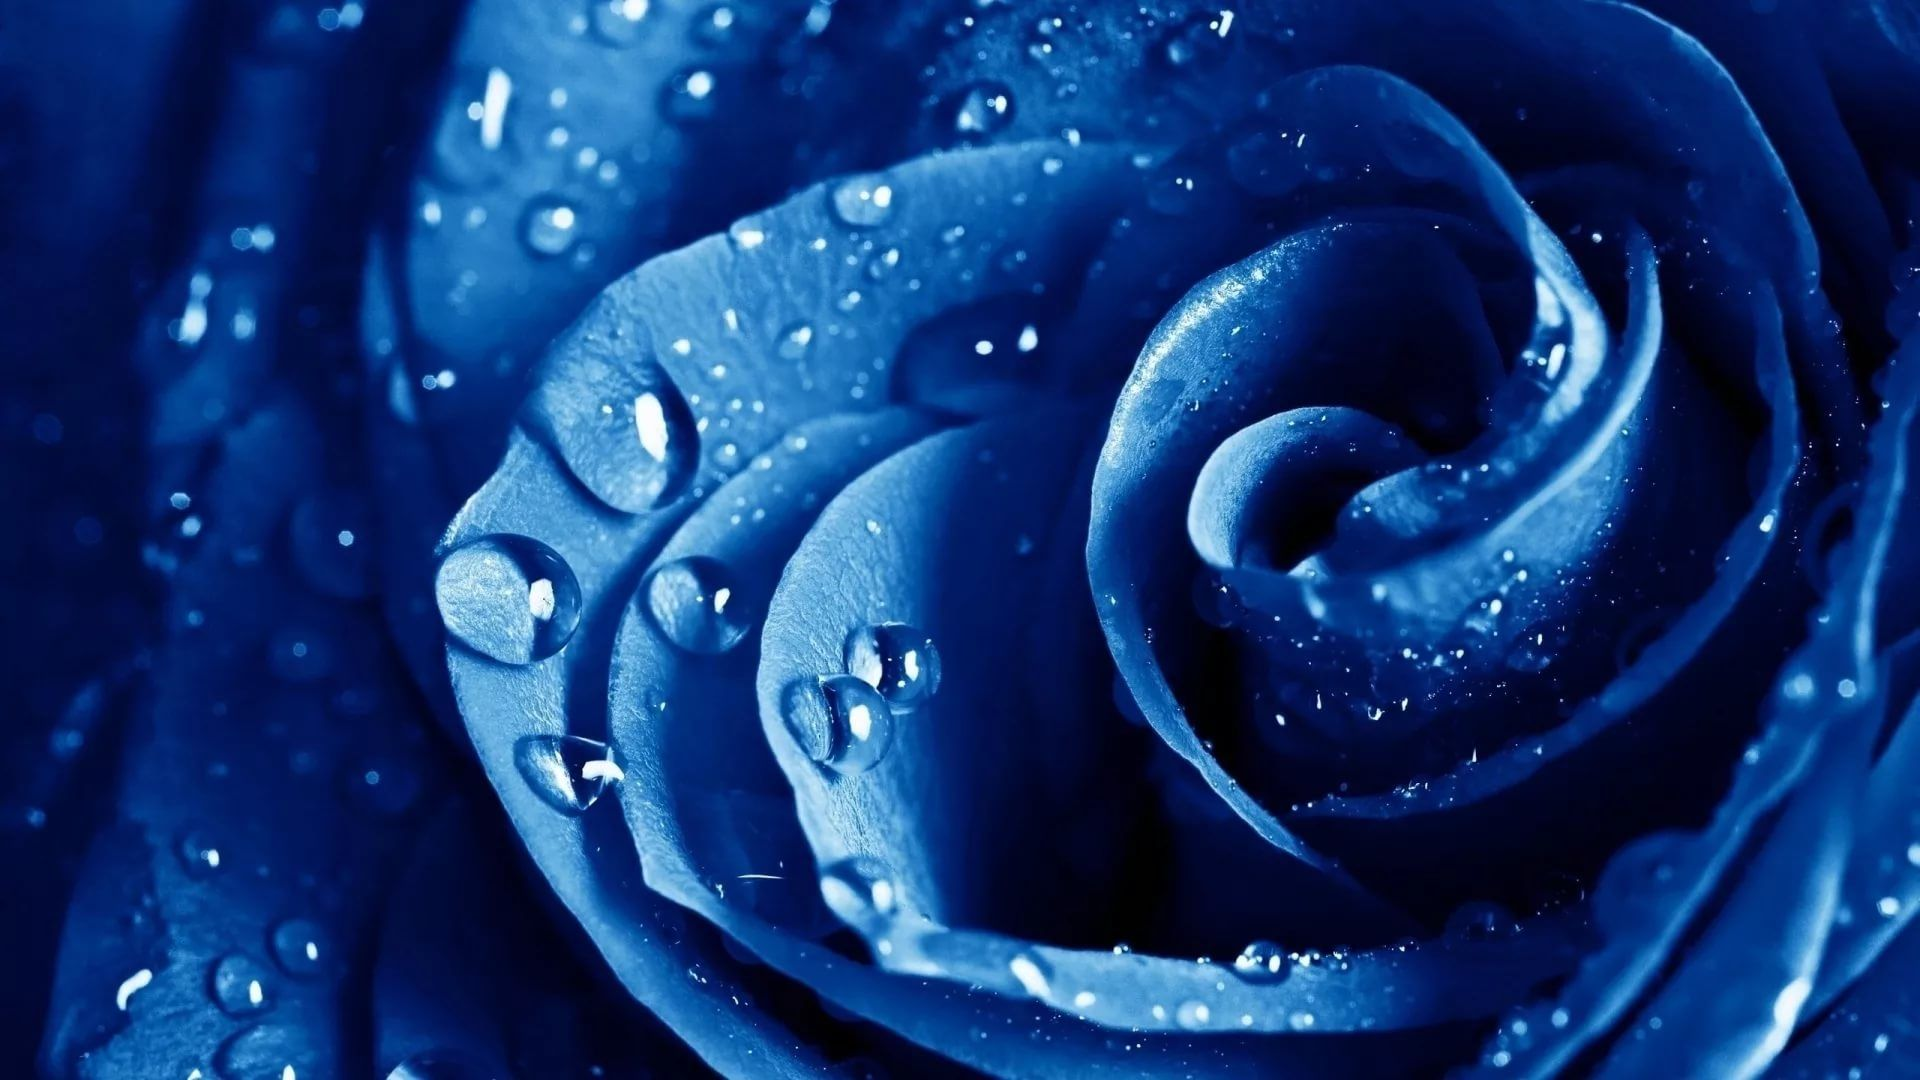 Blue Rose HD Wallpaper